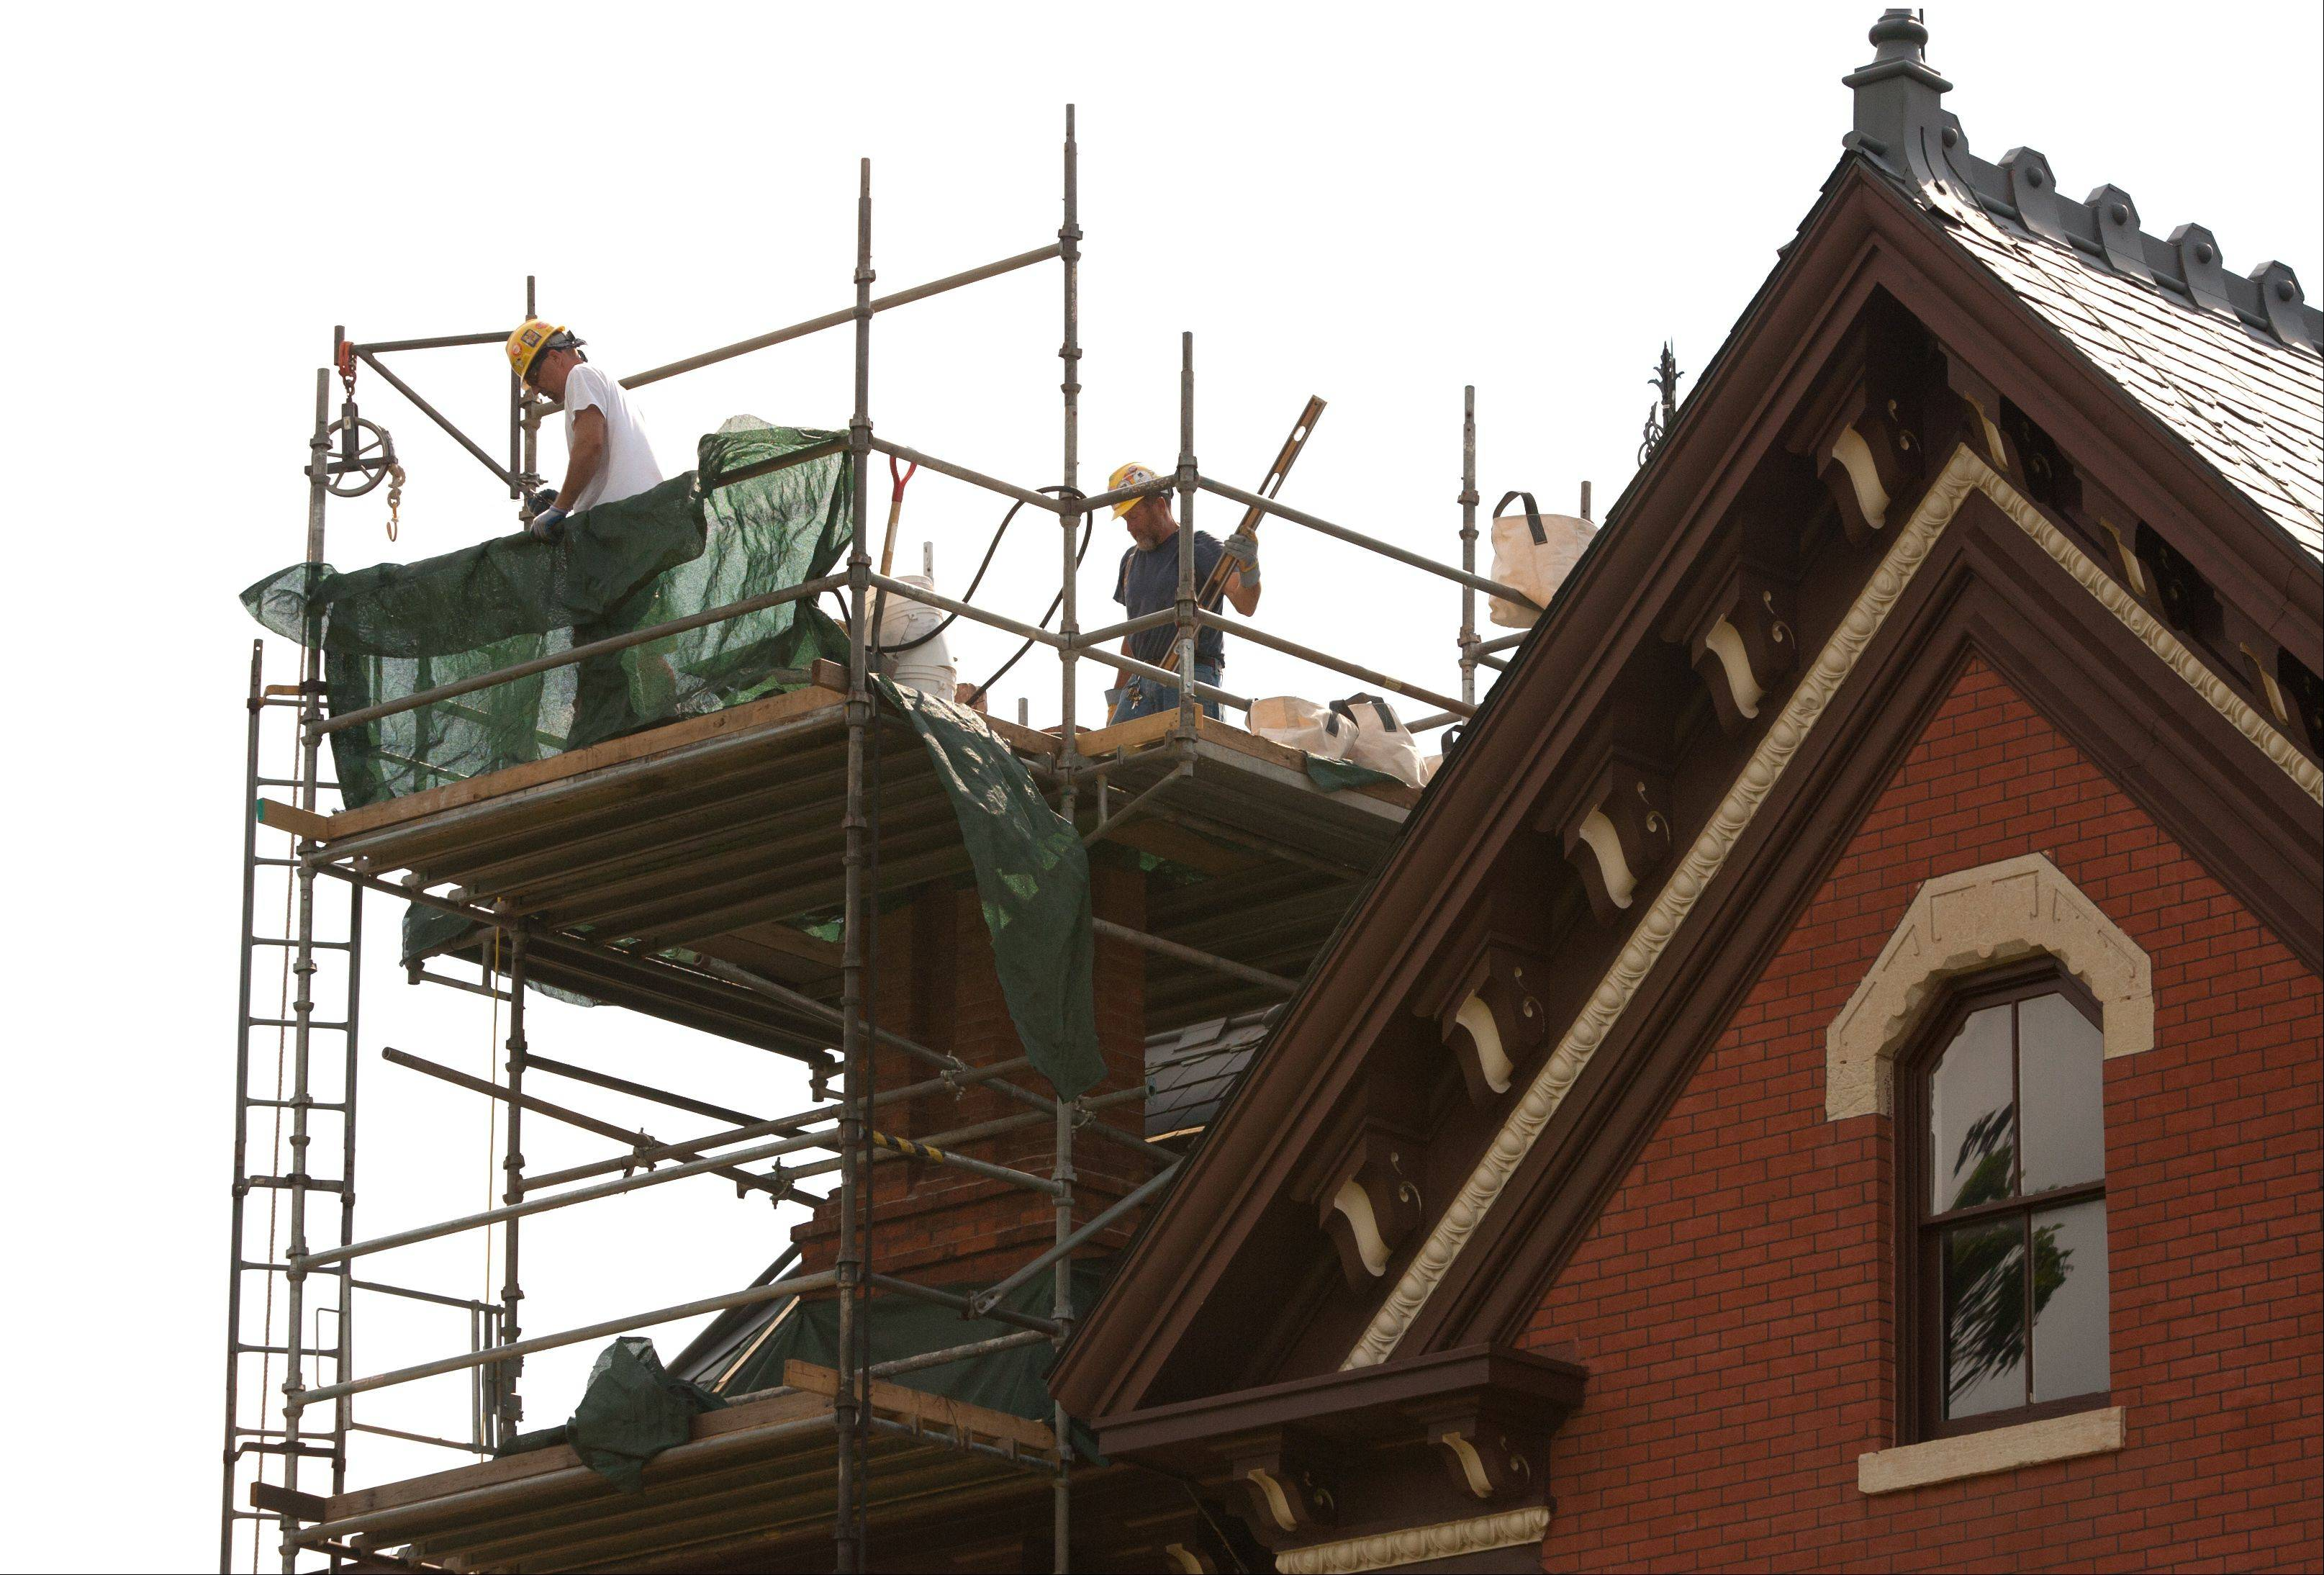 Berglund Construction of Chicago is making emergency repairs to the two tall chimneys at the Martin Mitchell Mansion on the grounds of Naper Settlement in Naperville. The chimneys were found to be in need of immediate fixes during a building assessment in May.